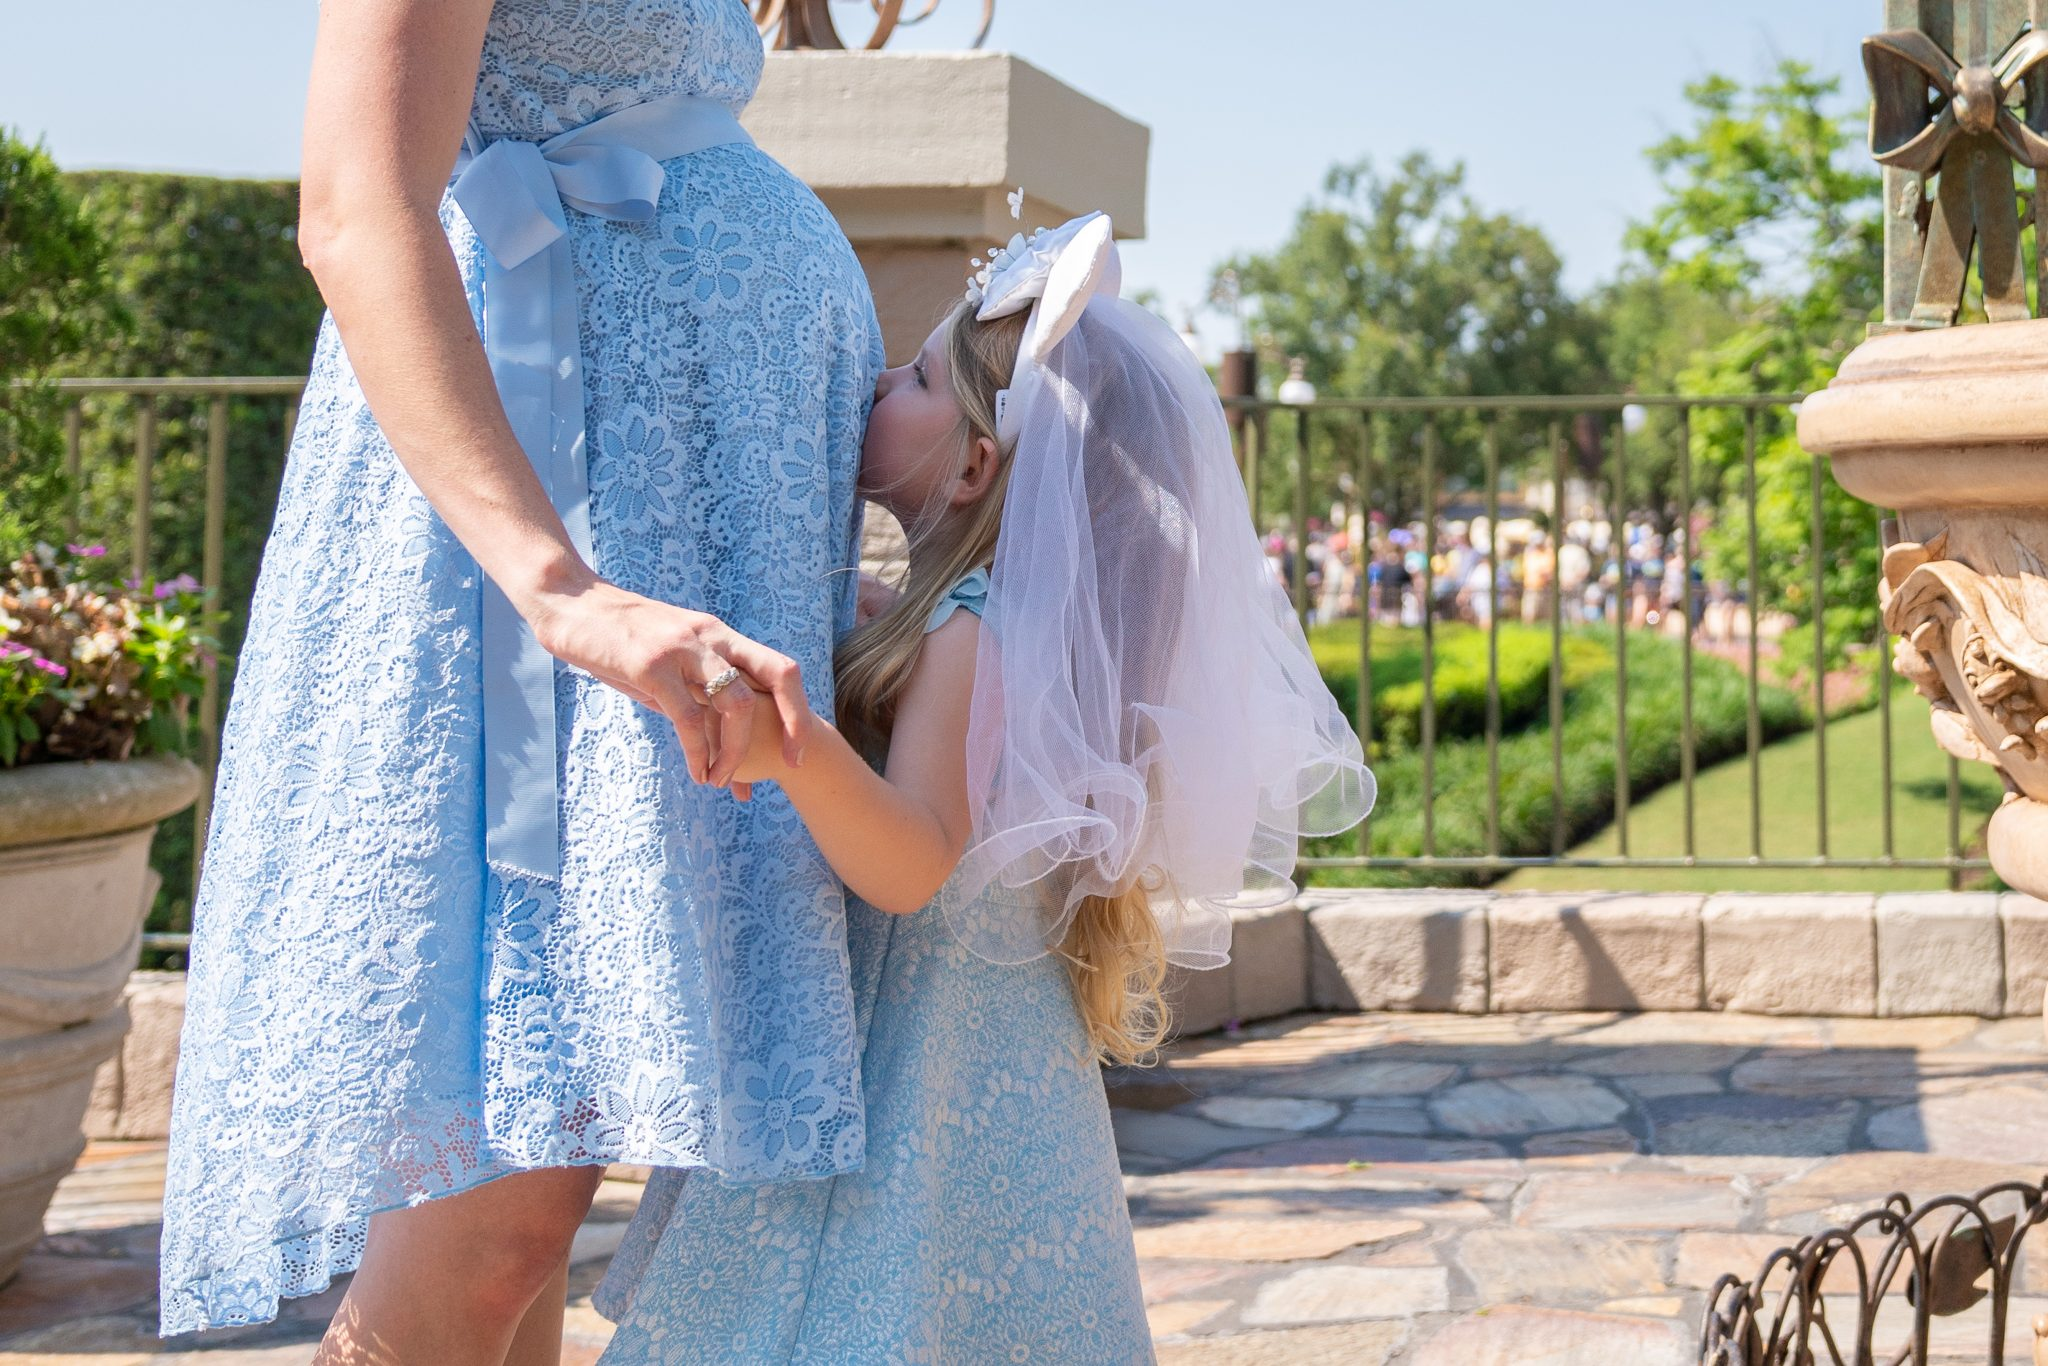 Walt Disney World While Pregnant featured by top US Disney blogger, Marcie and the Mouse | Maternity photo shoot at Walt Disney World